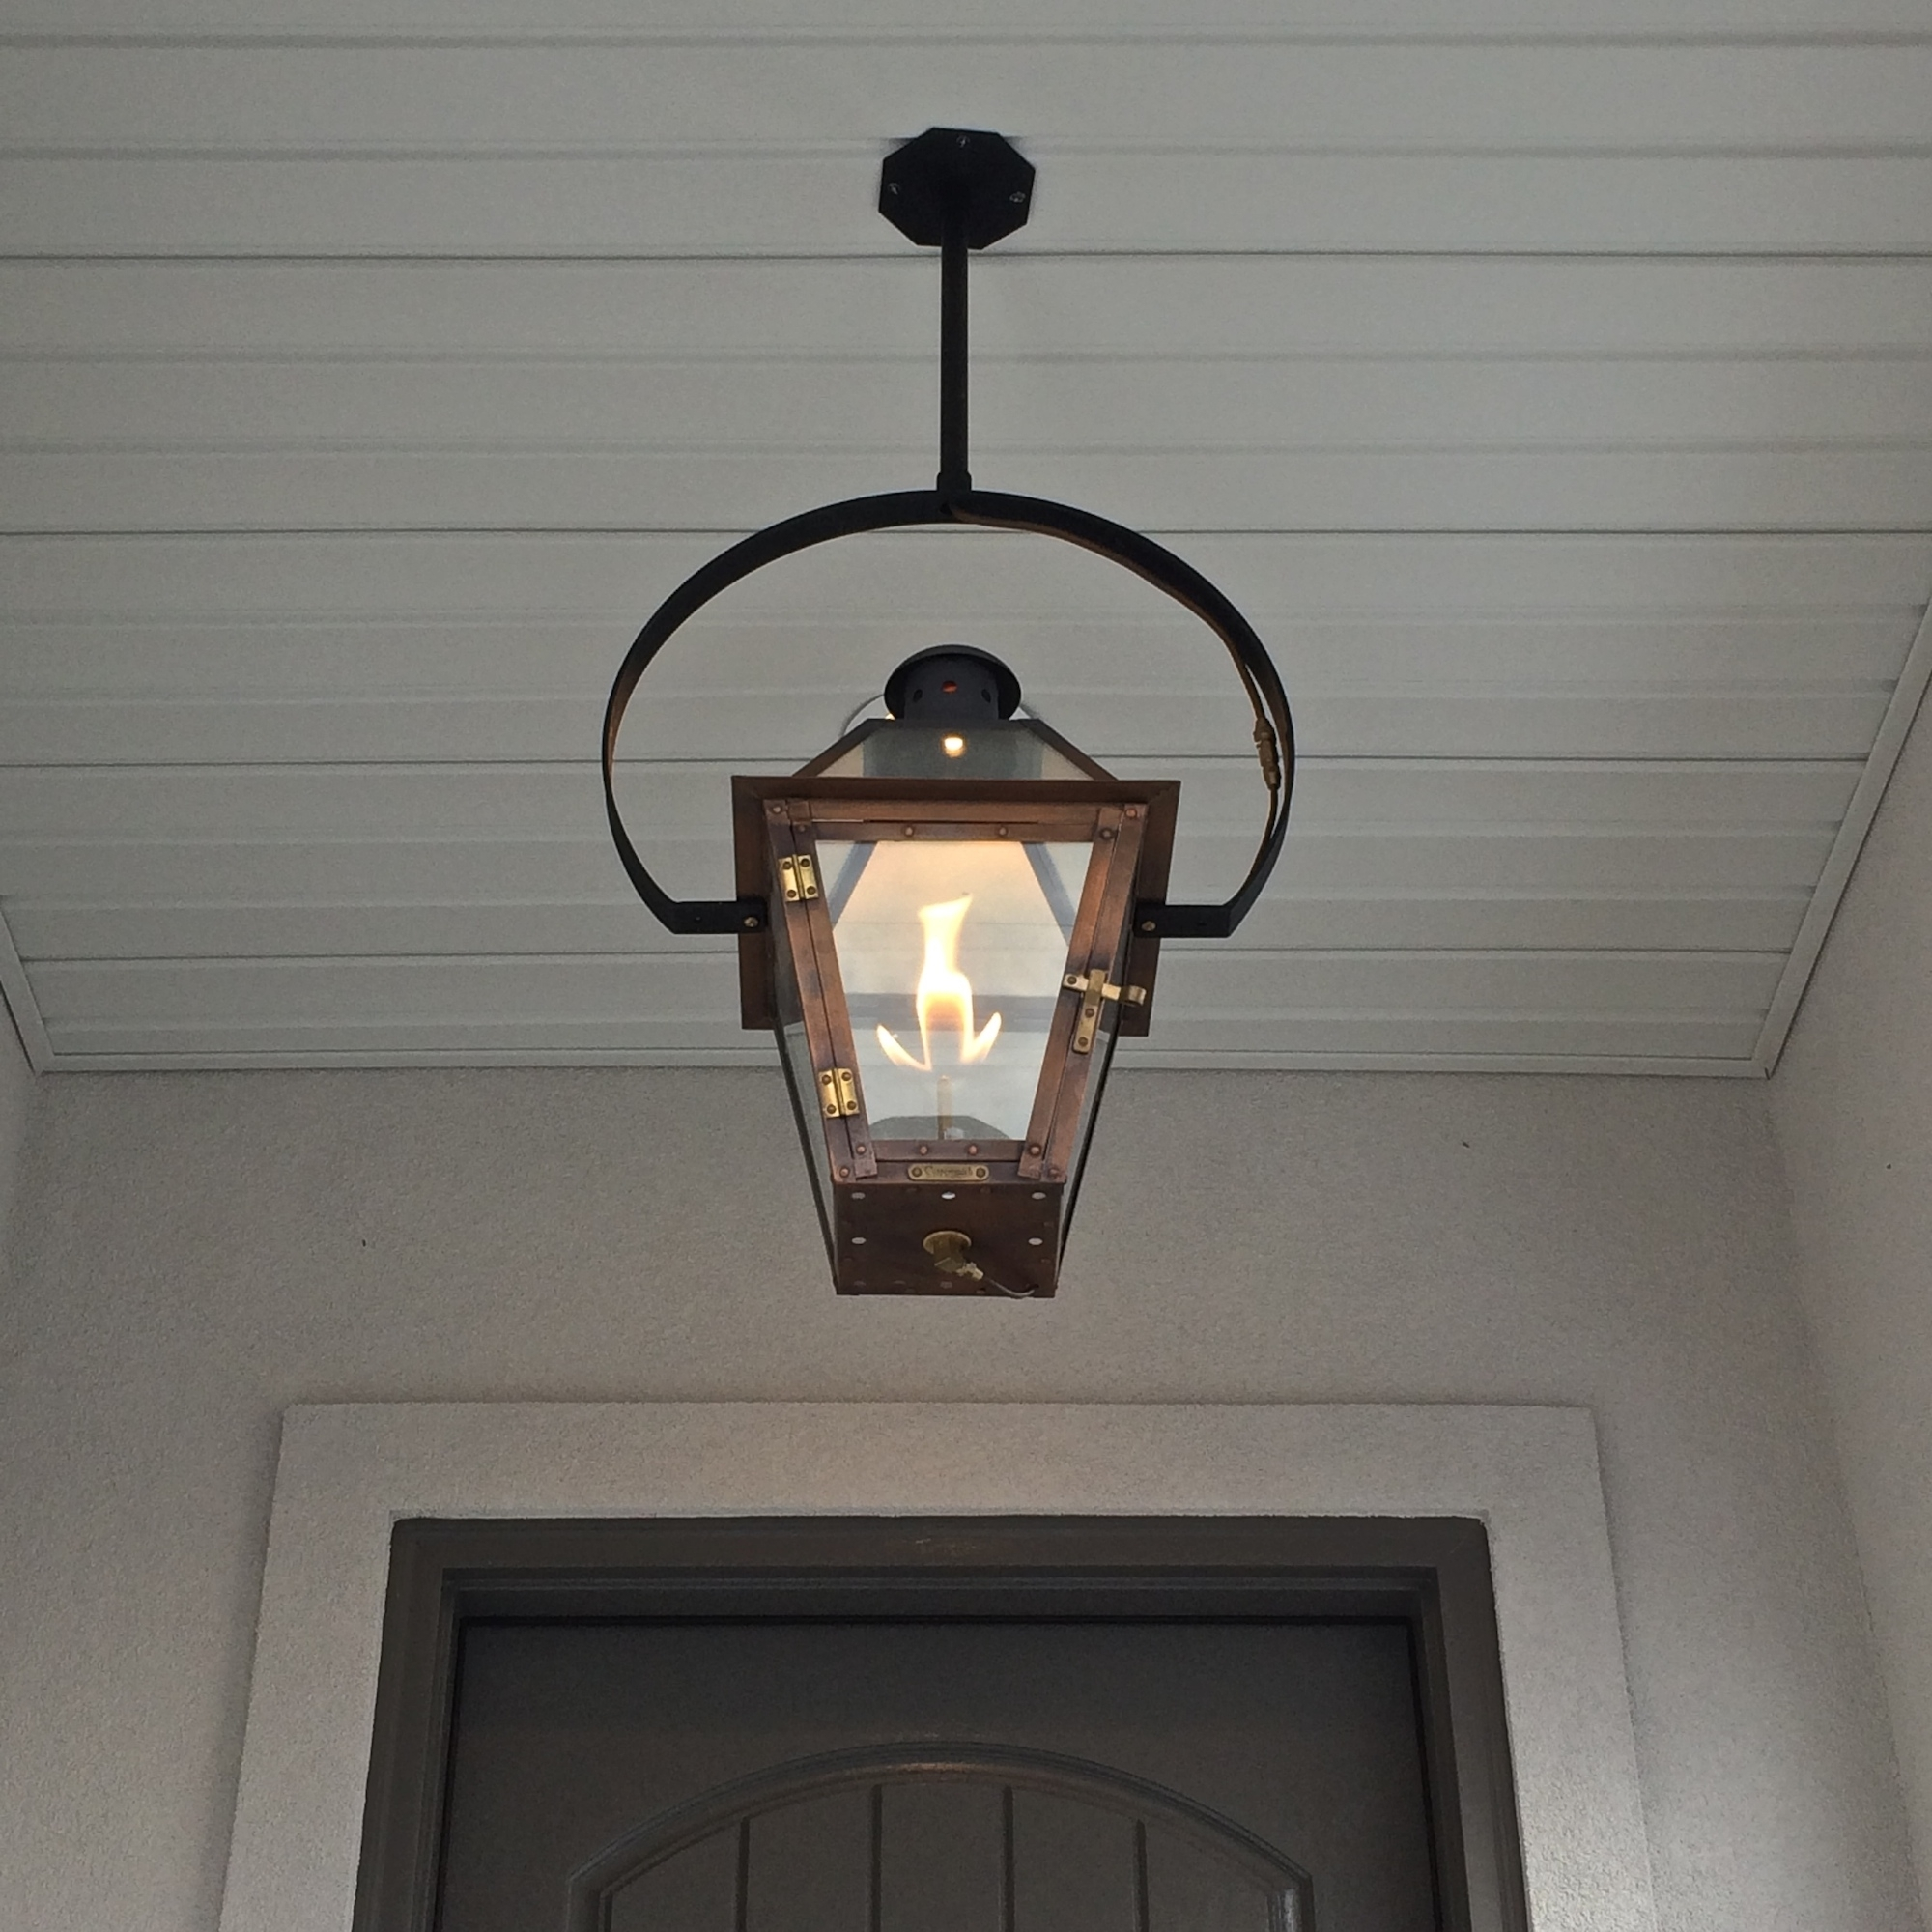 Exterior Entryway Large Hanging Gas Lantern Estess Contractors – Hommum With Outdoor Entryway Hanging Lights (#3 of 15)